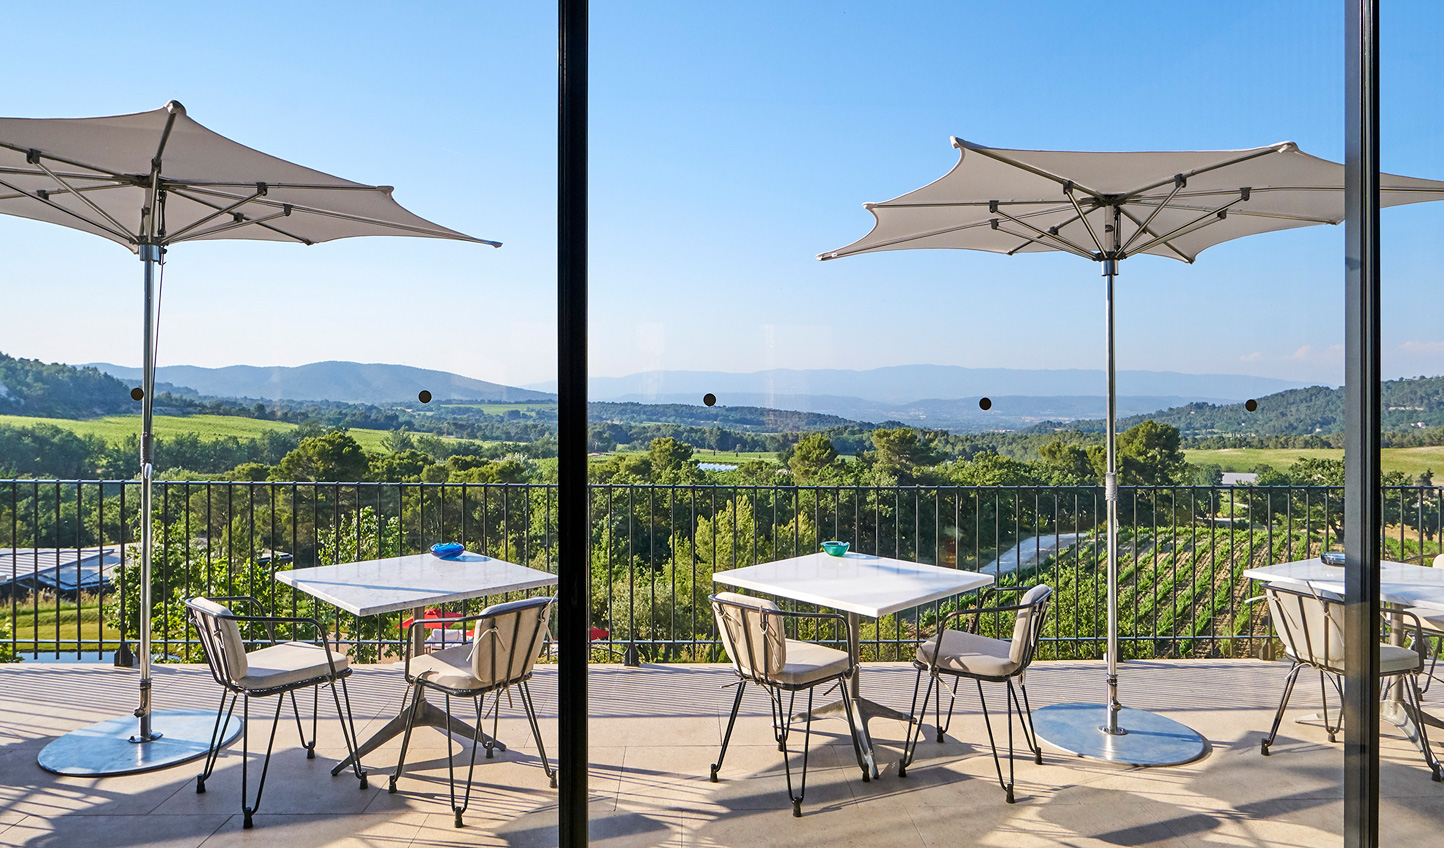 Enjoy views over the rolling hills